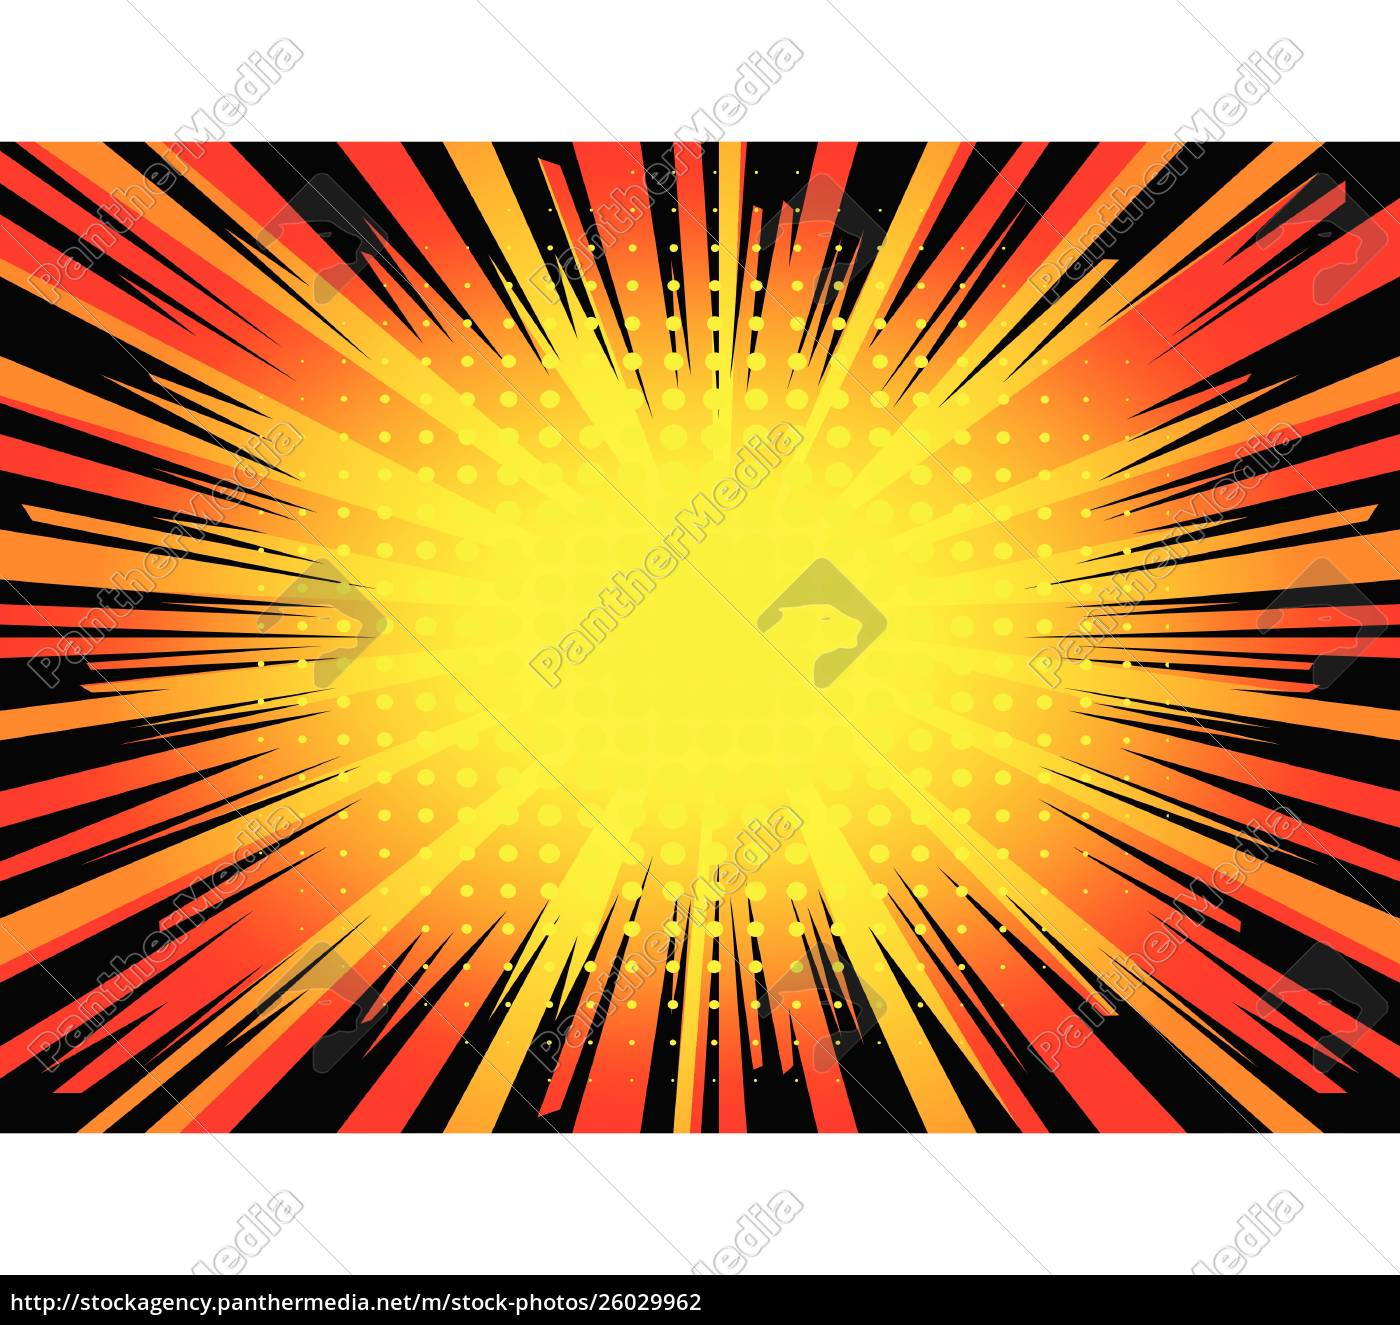 comic, book, explosion, background. - 26029962